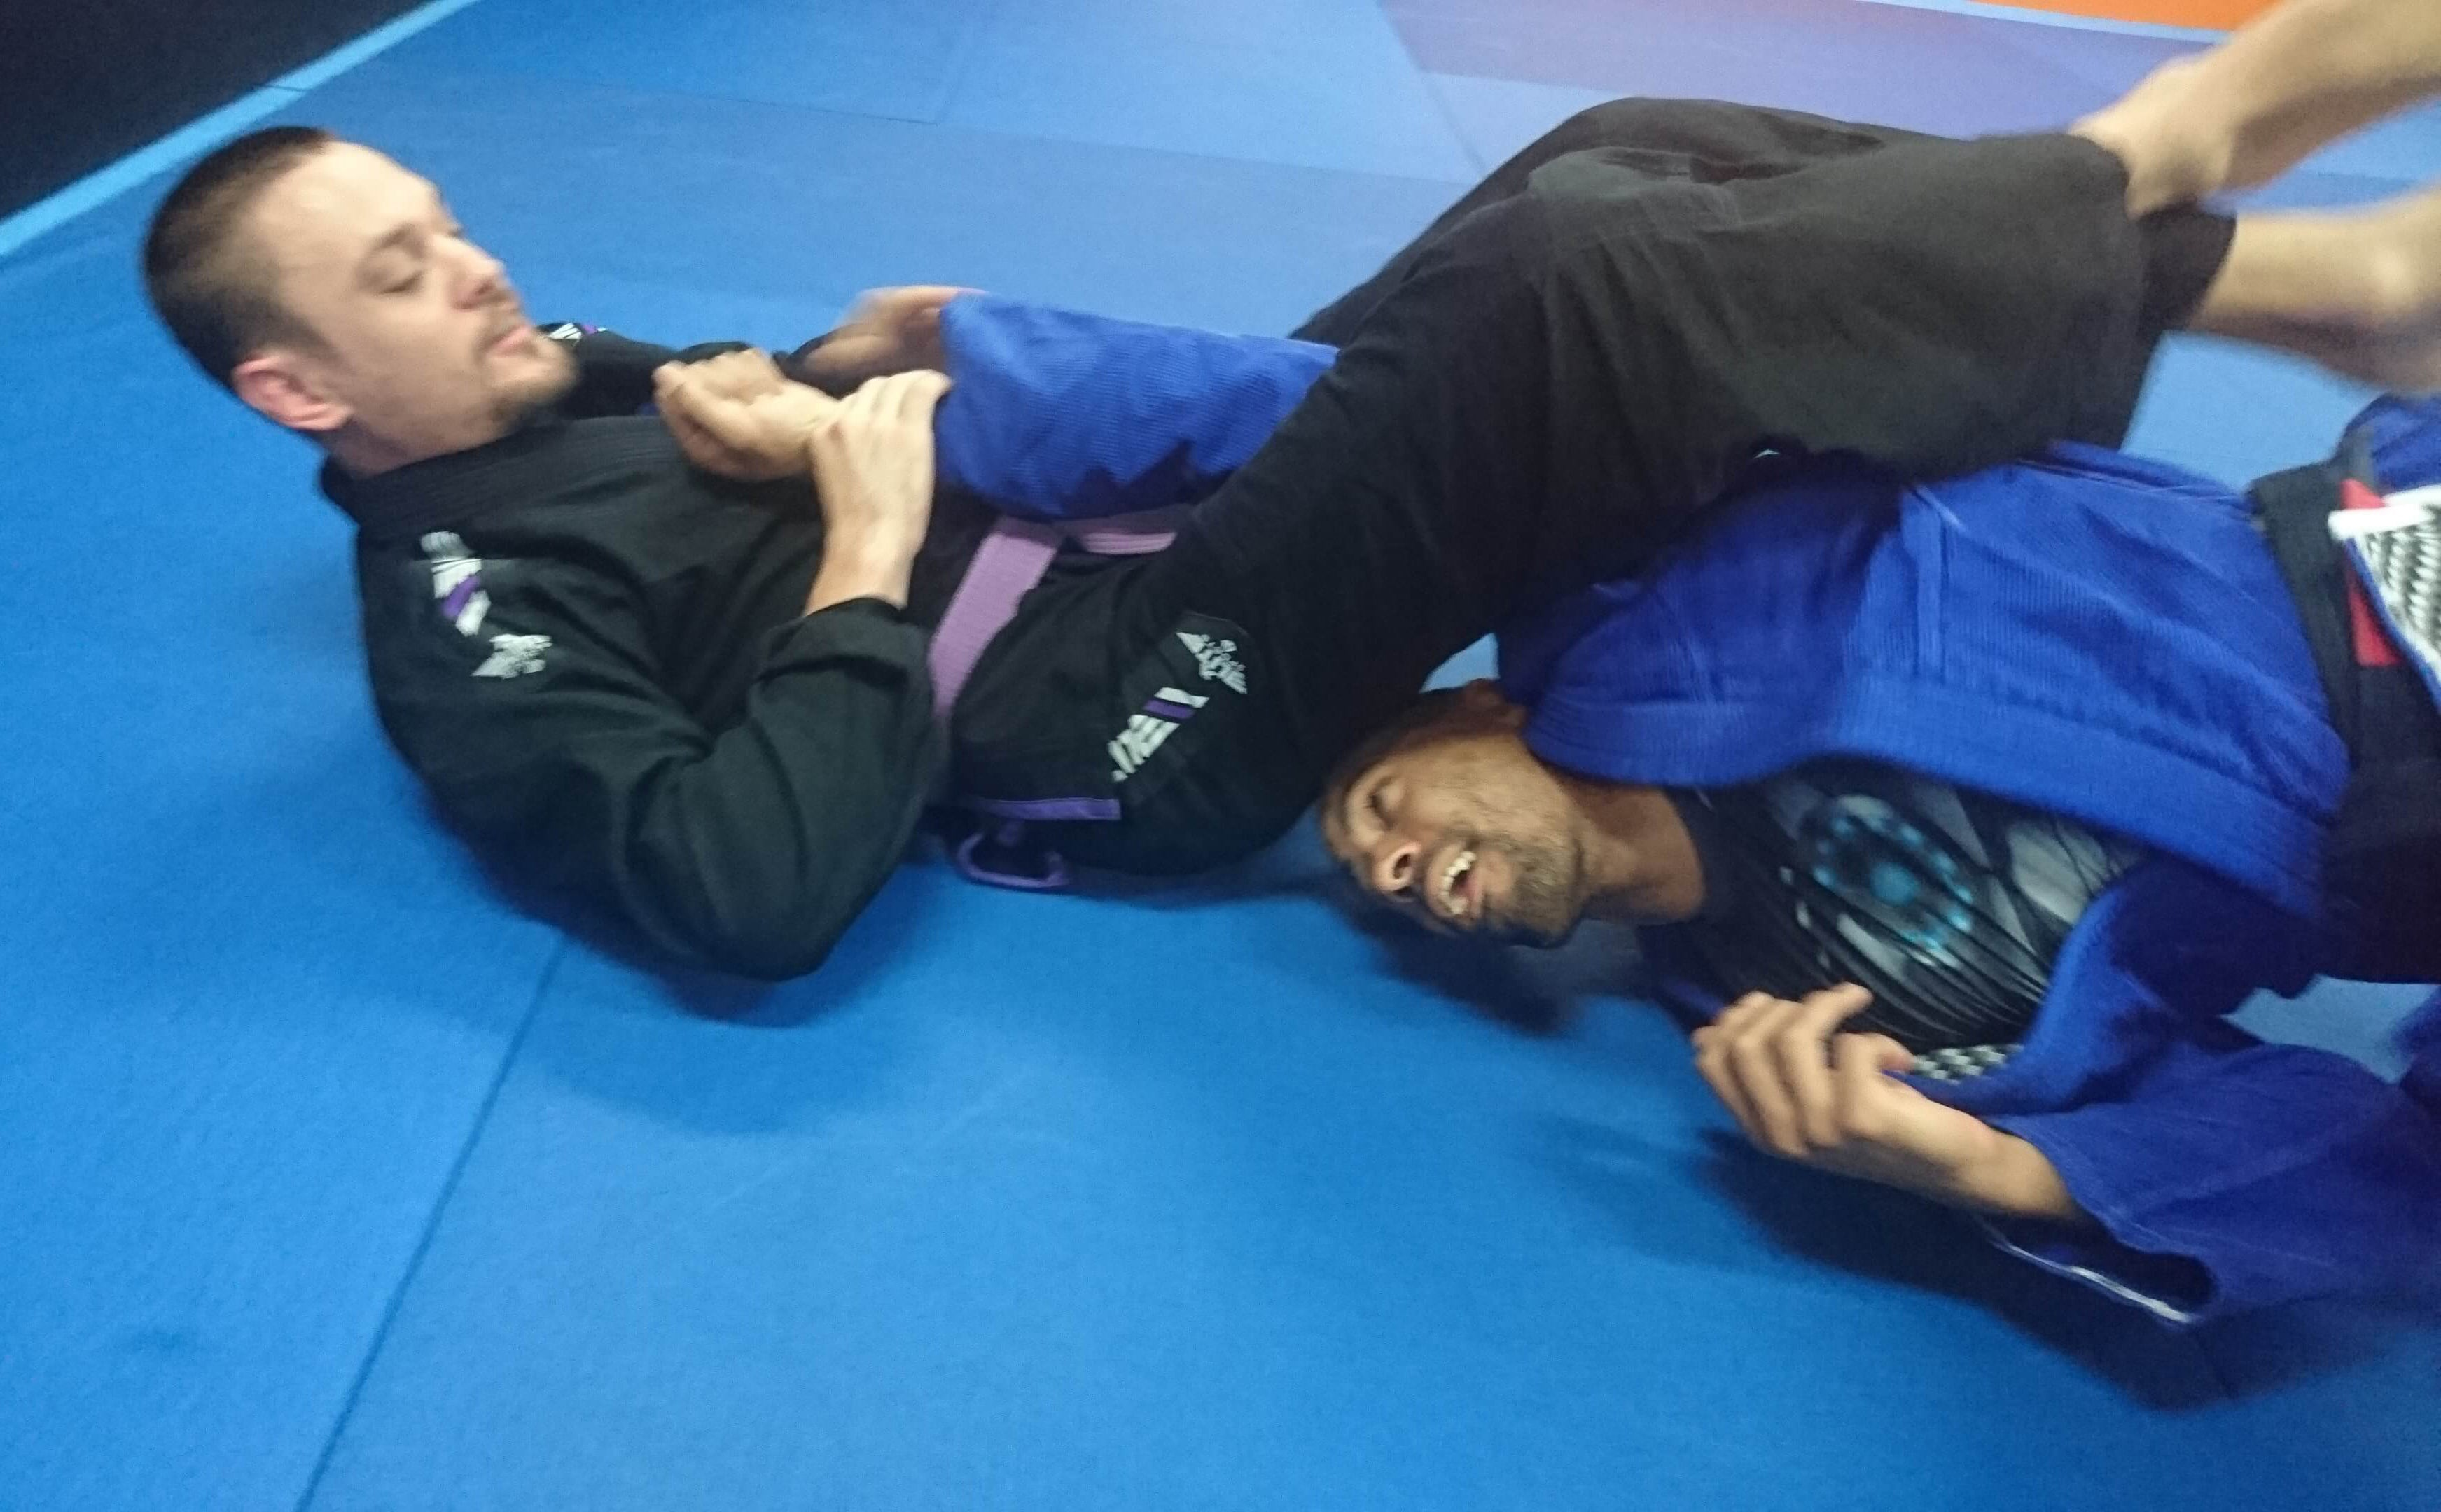 Elite sports Team Elite BJJ Shaun Steven Harrison image5.jpg